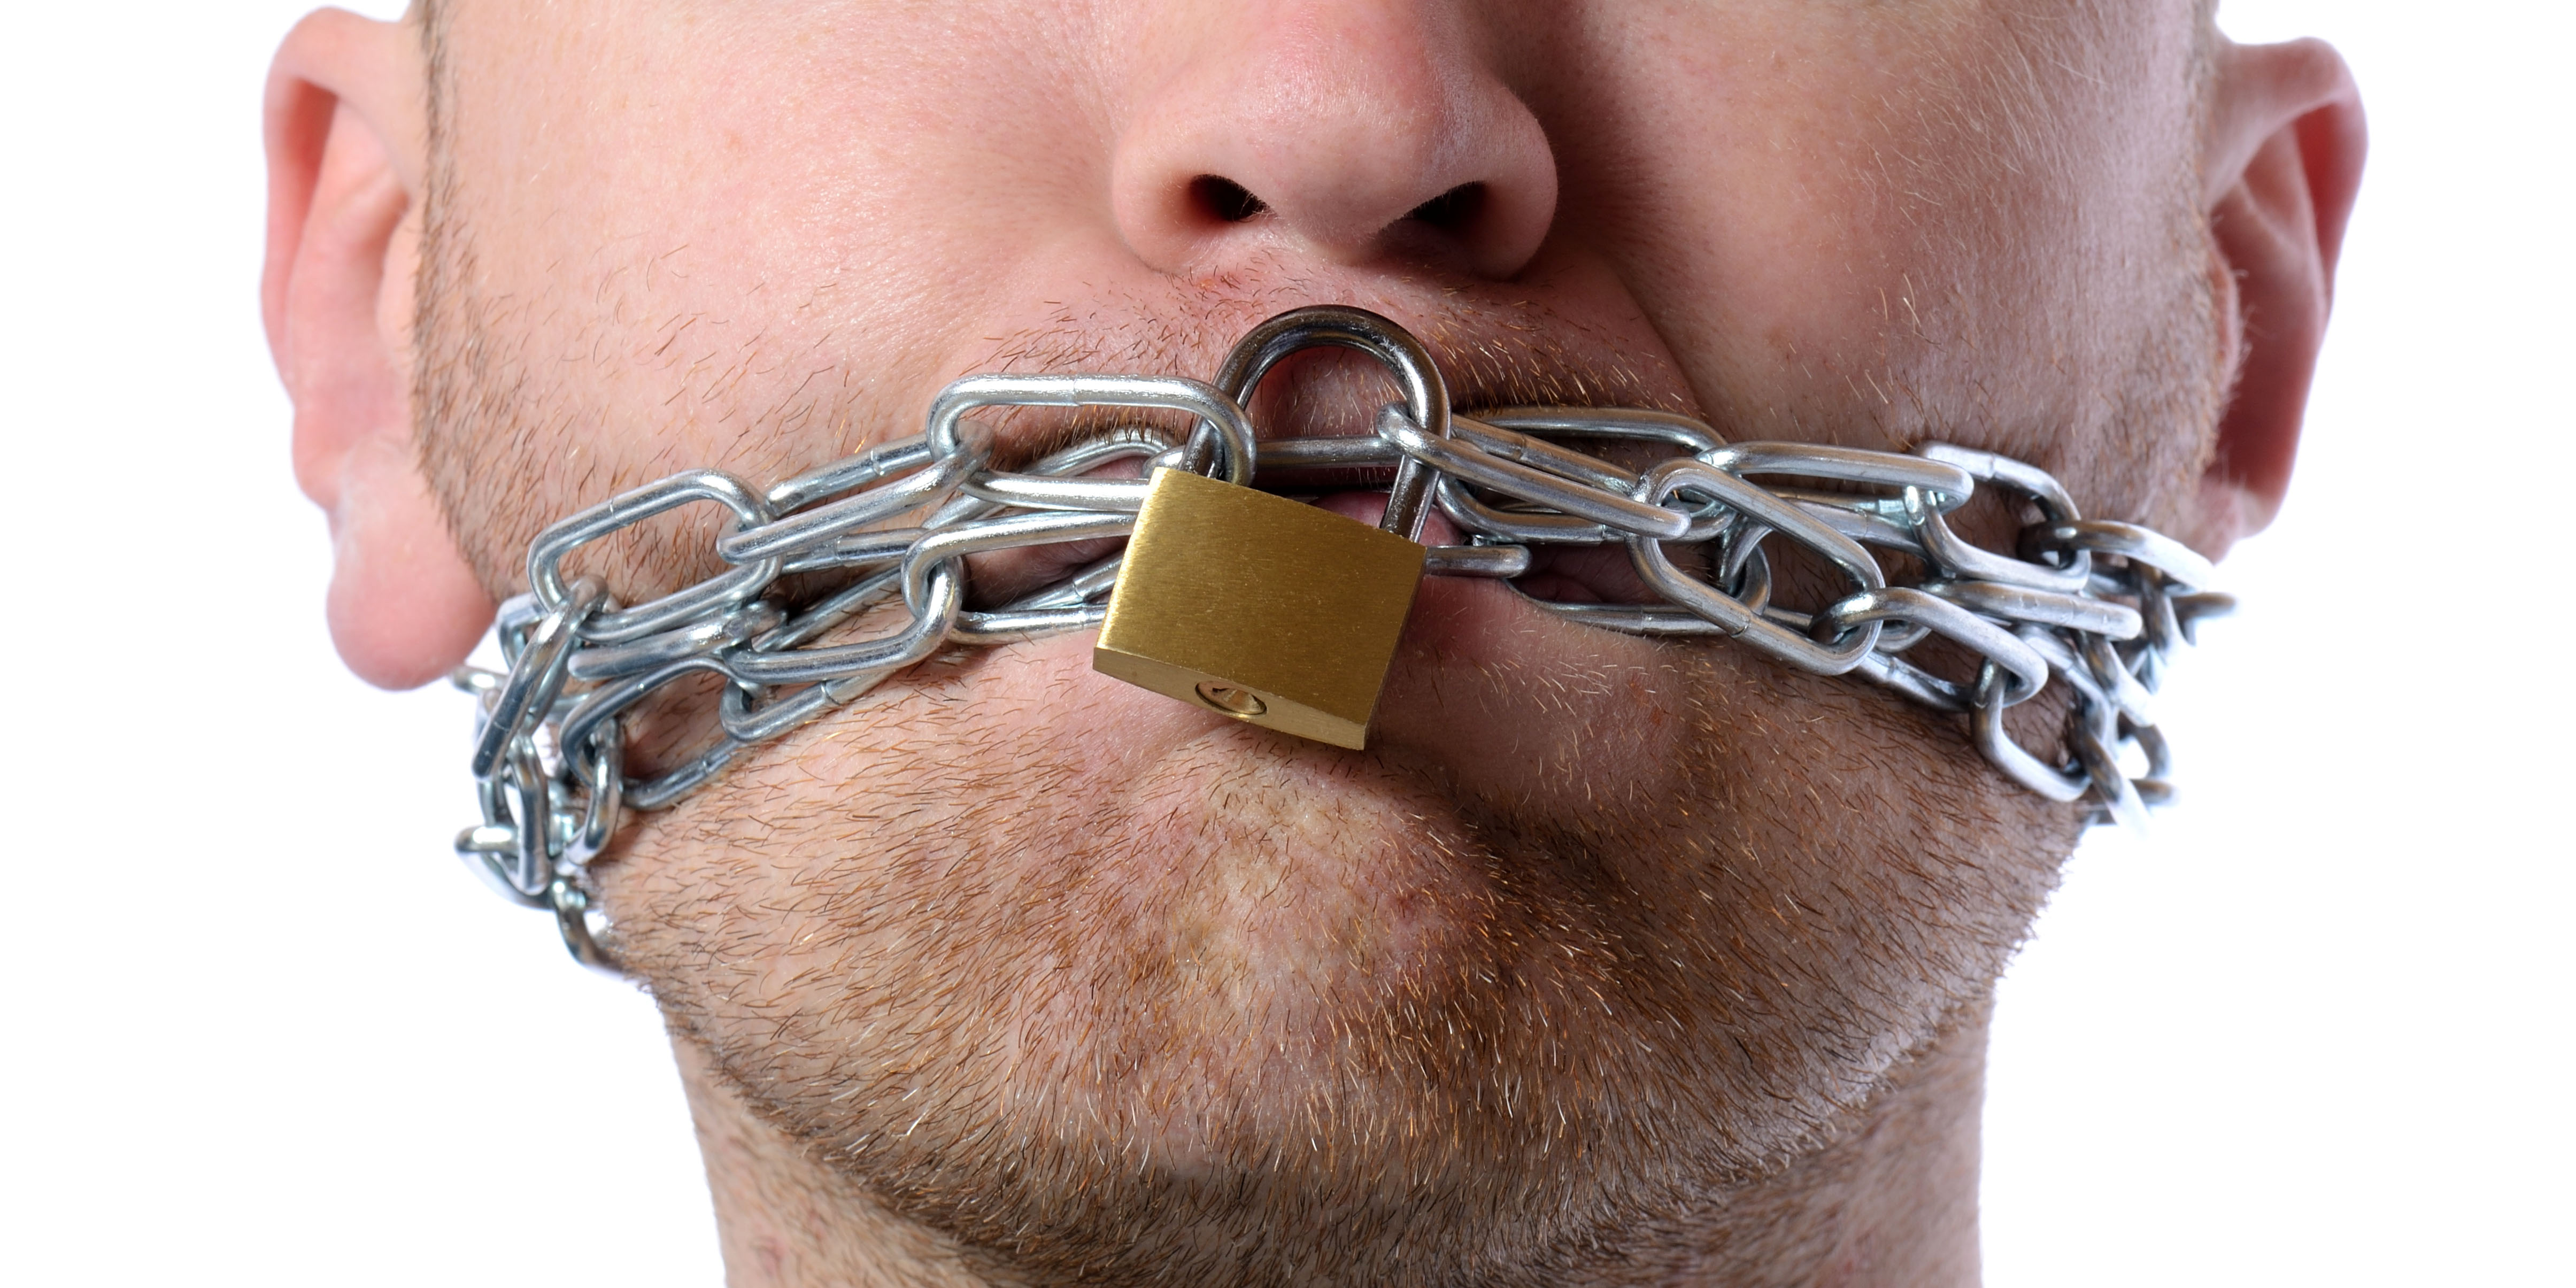 Tell the FDA to Stop Censoring Free Speech